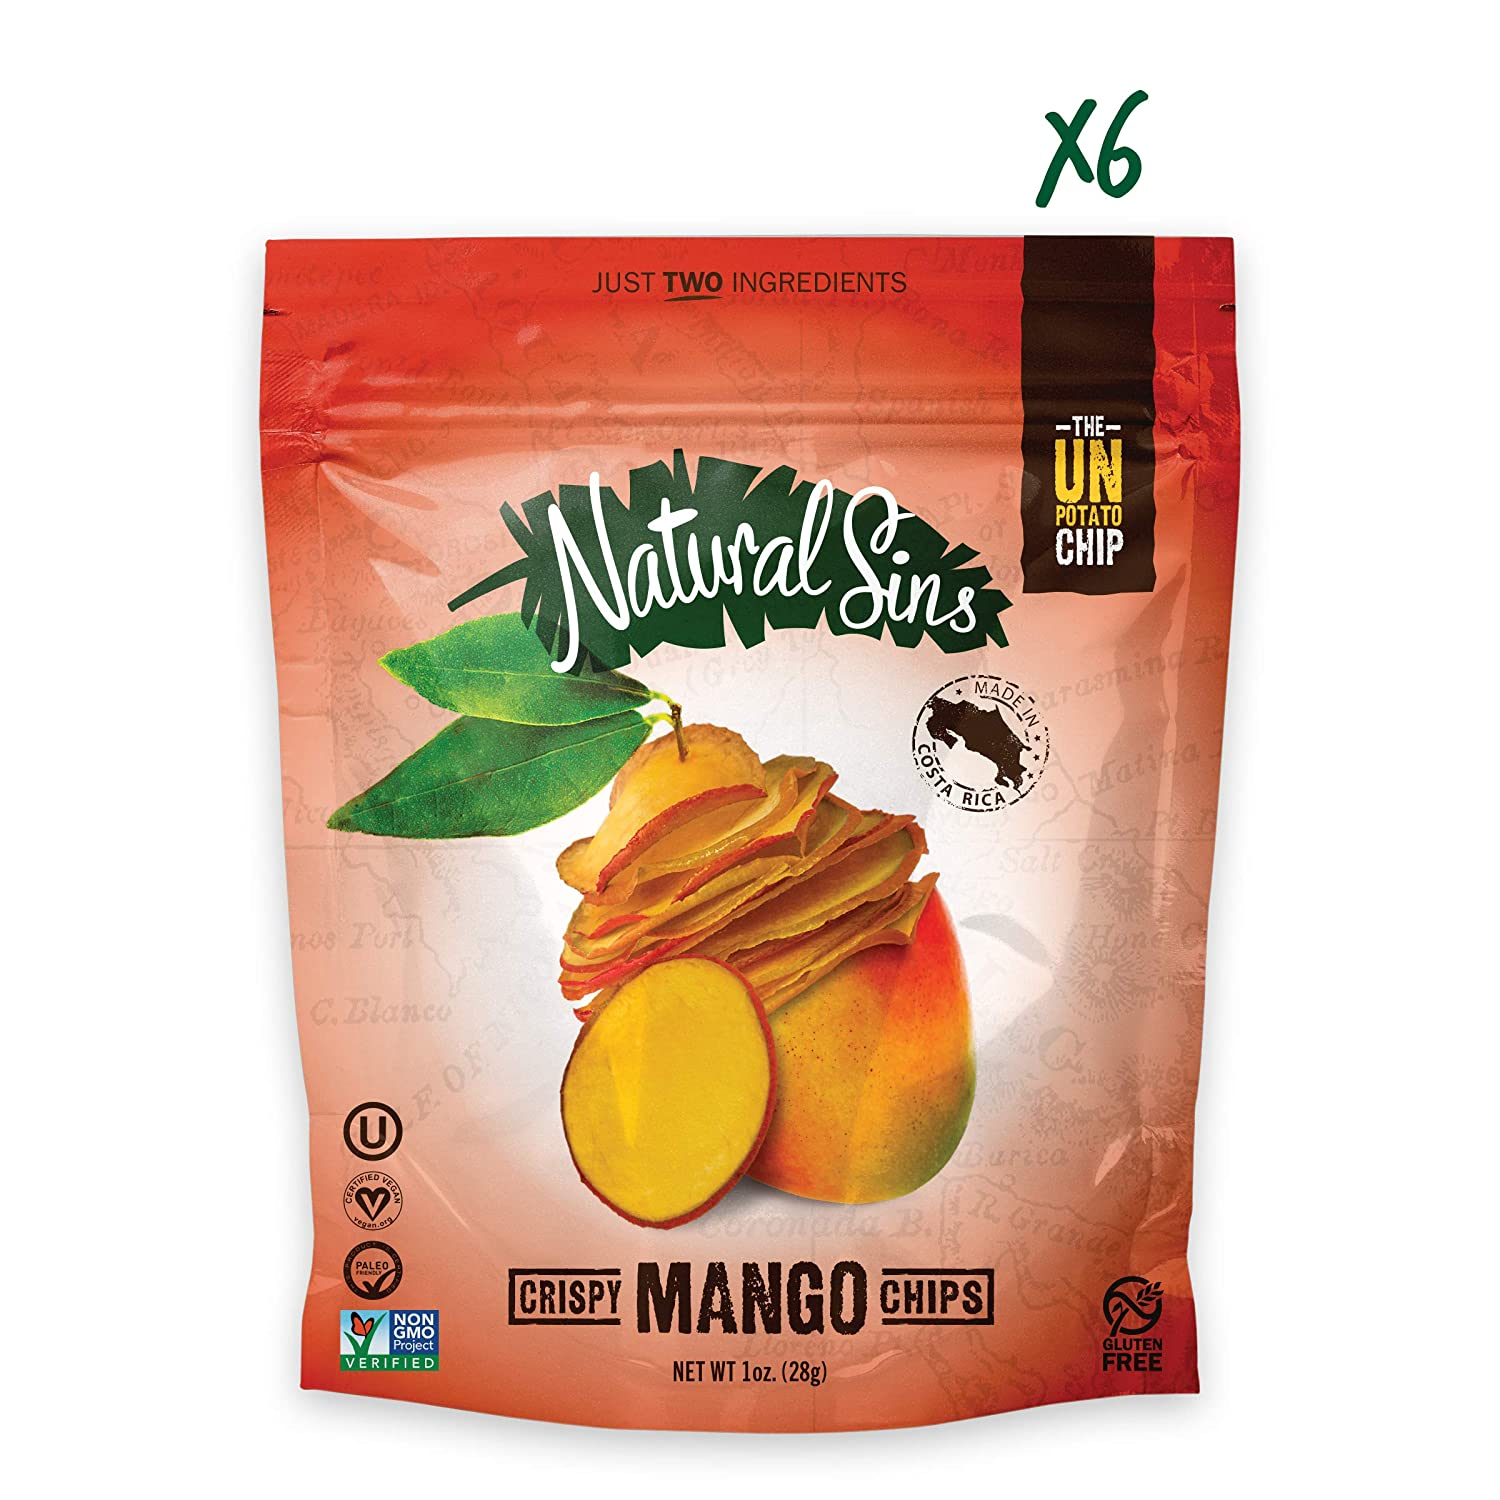 Crispy Mango Chips - Naturals Sins - Certified Paleo Friendly by the Paleo Foundation